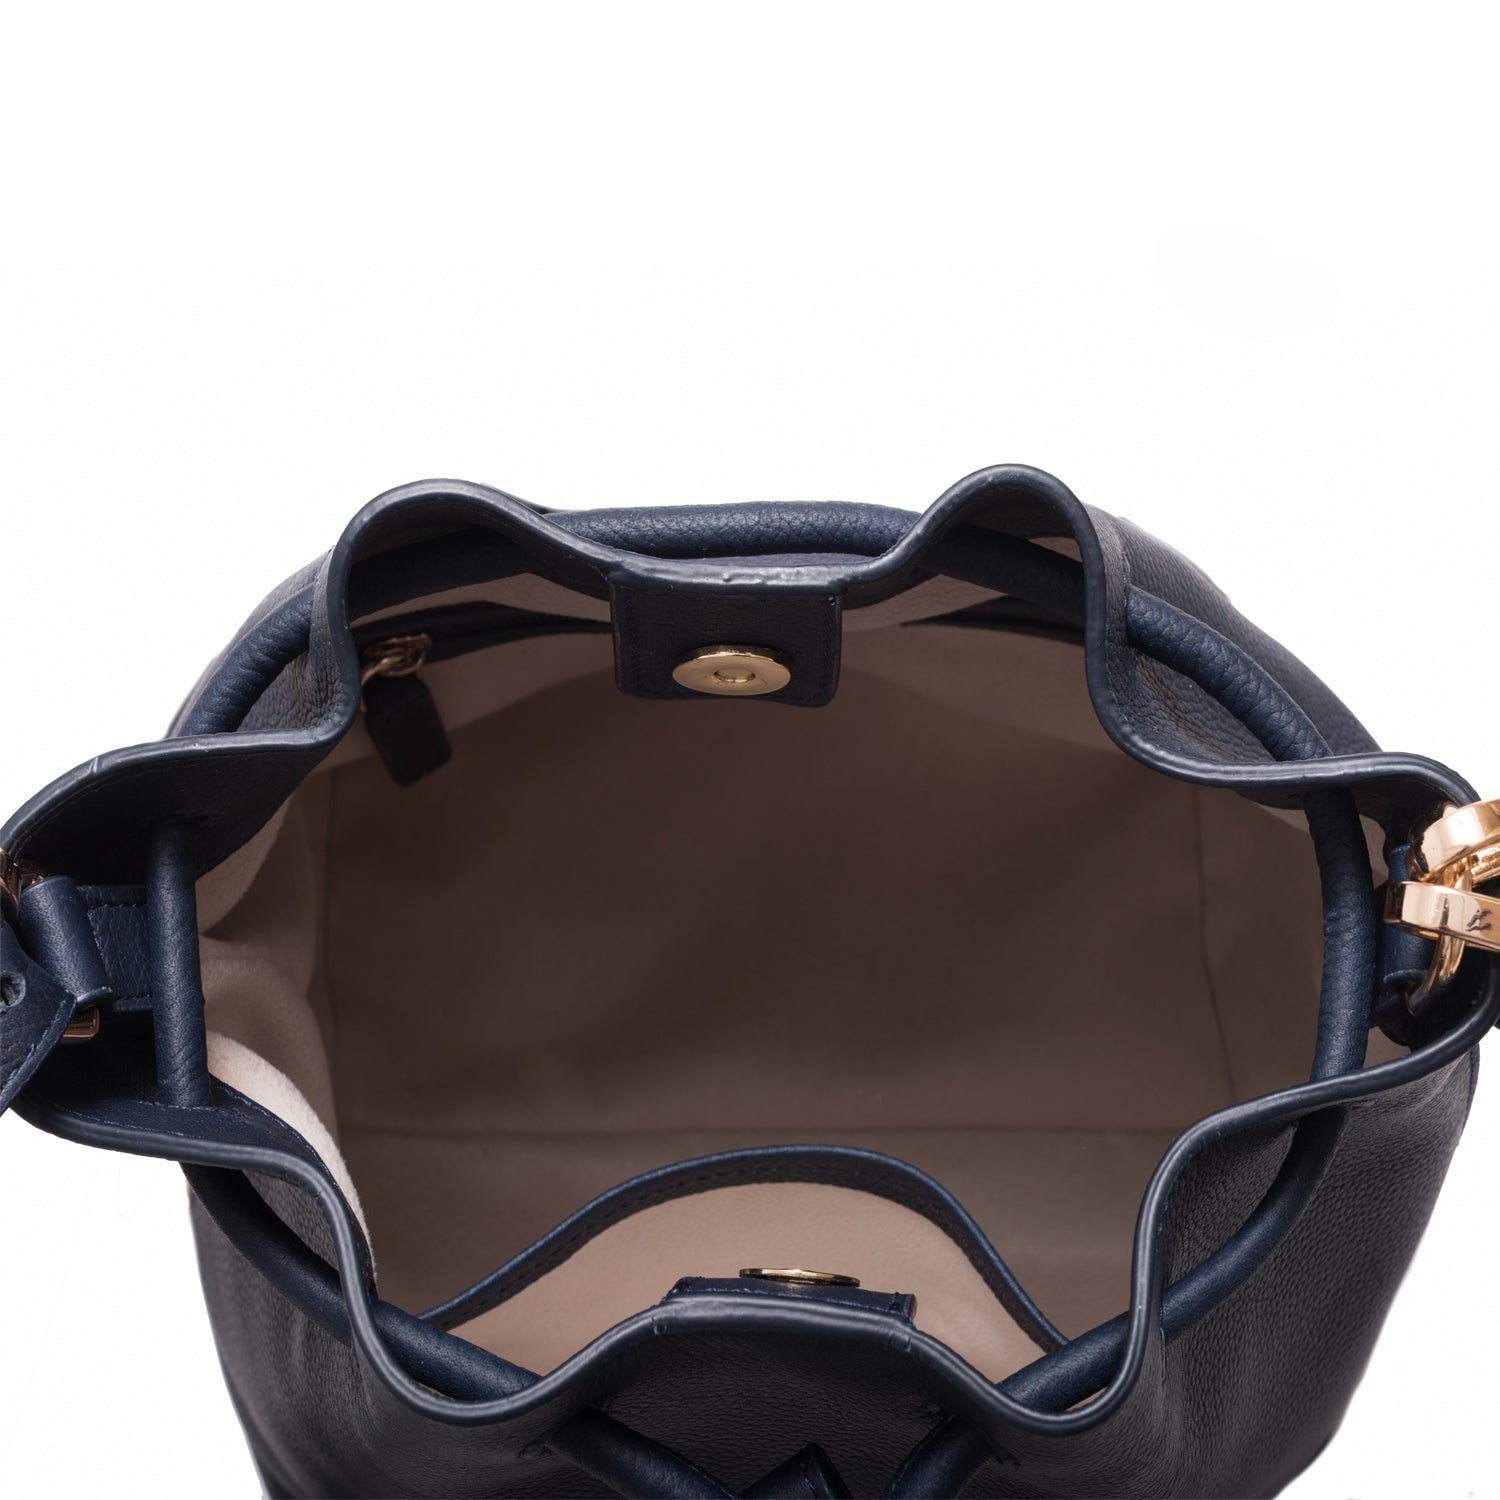 A convertible medium leather bucket crossbody bag in sparkly navy, interior image.